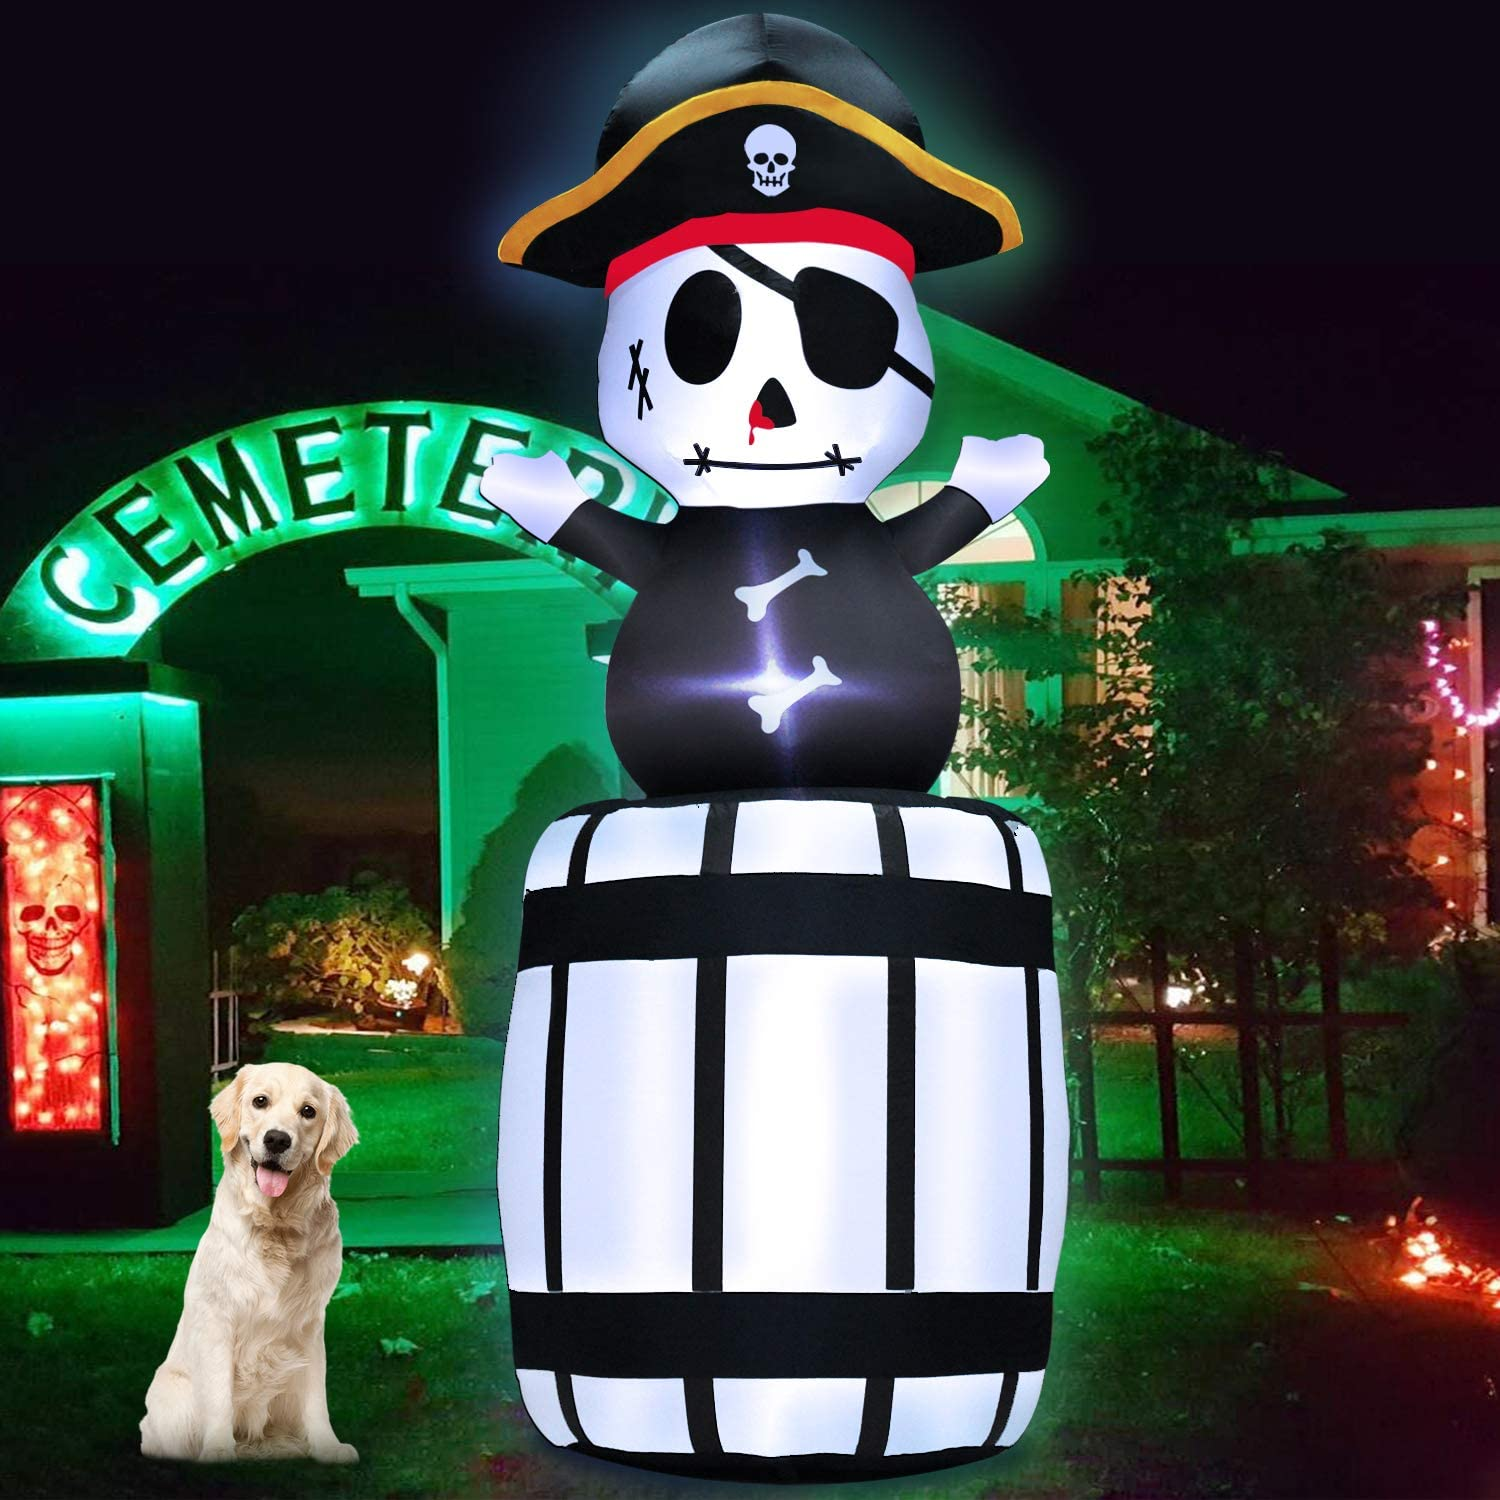 TURNMEON 7Ft Tall Inflatables Ghost Pirate Captain Halloween Air Blow Up Skeleton Inflatables Yard Scary Decor with Tethers Stakes LED Lights for Halloween Decorations Outdoor Indoor Home Lawn Garden